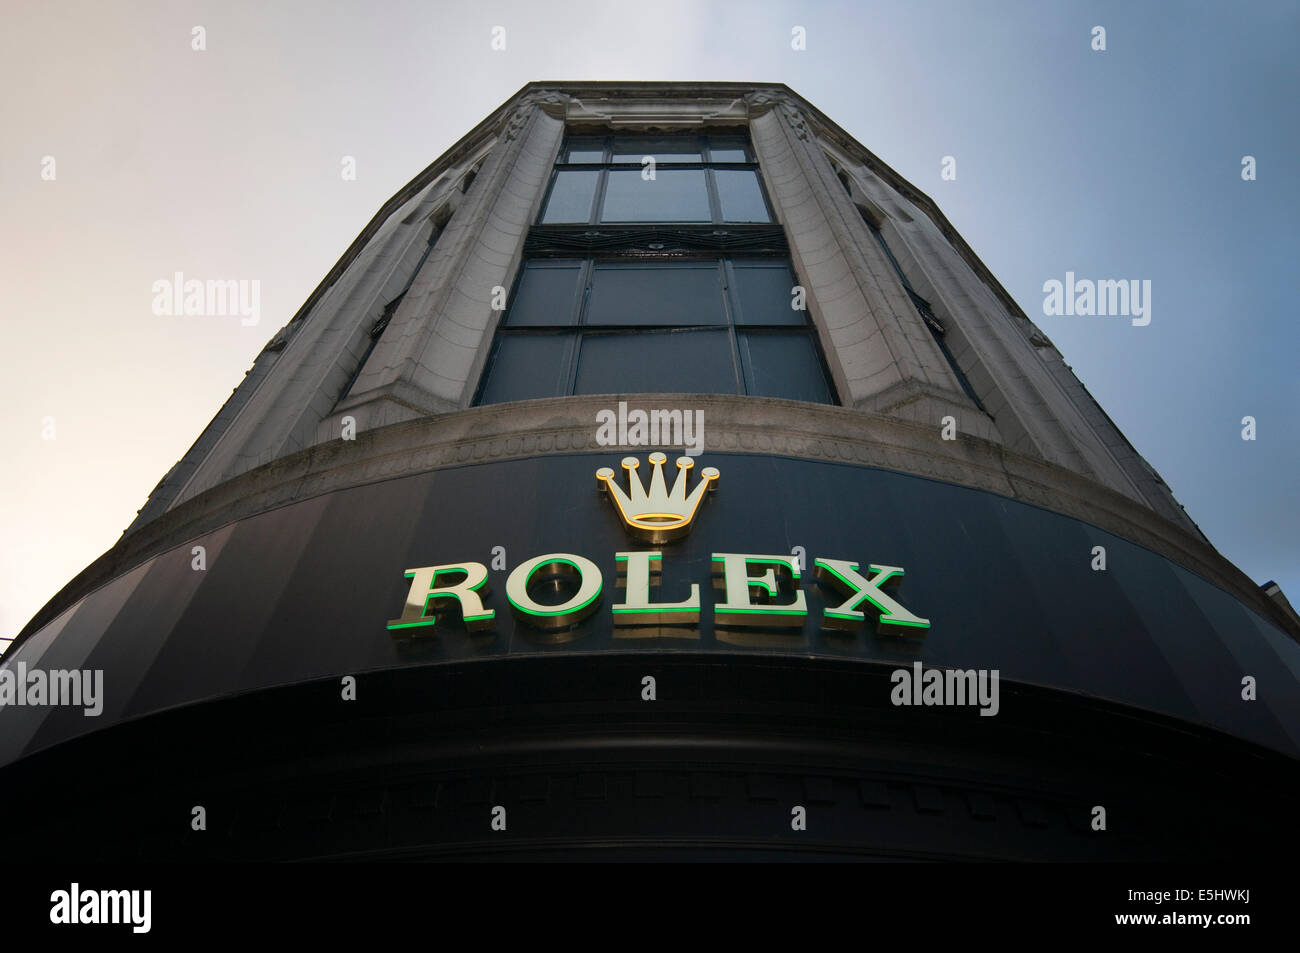 rolex shop dealer dealers watch watches salesman retail - Stock Image